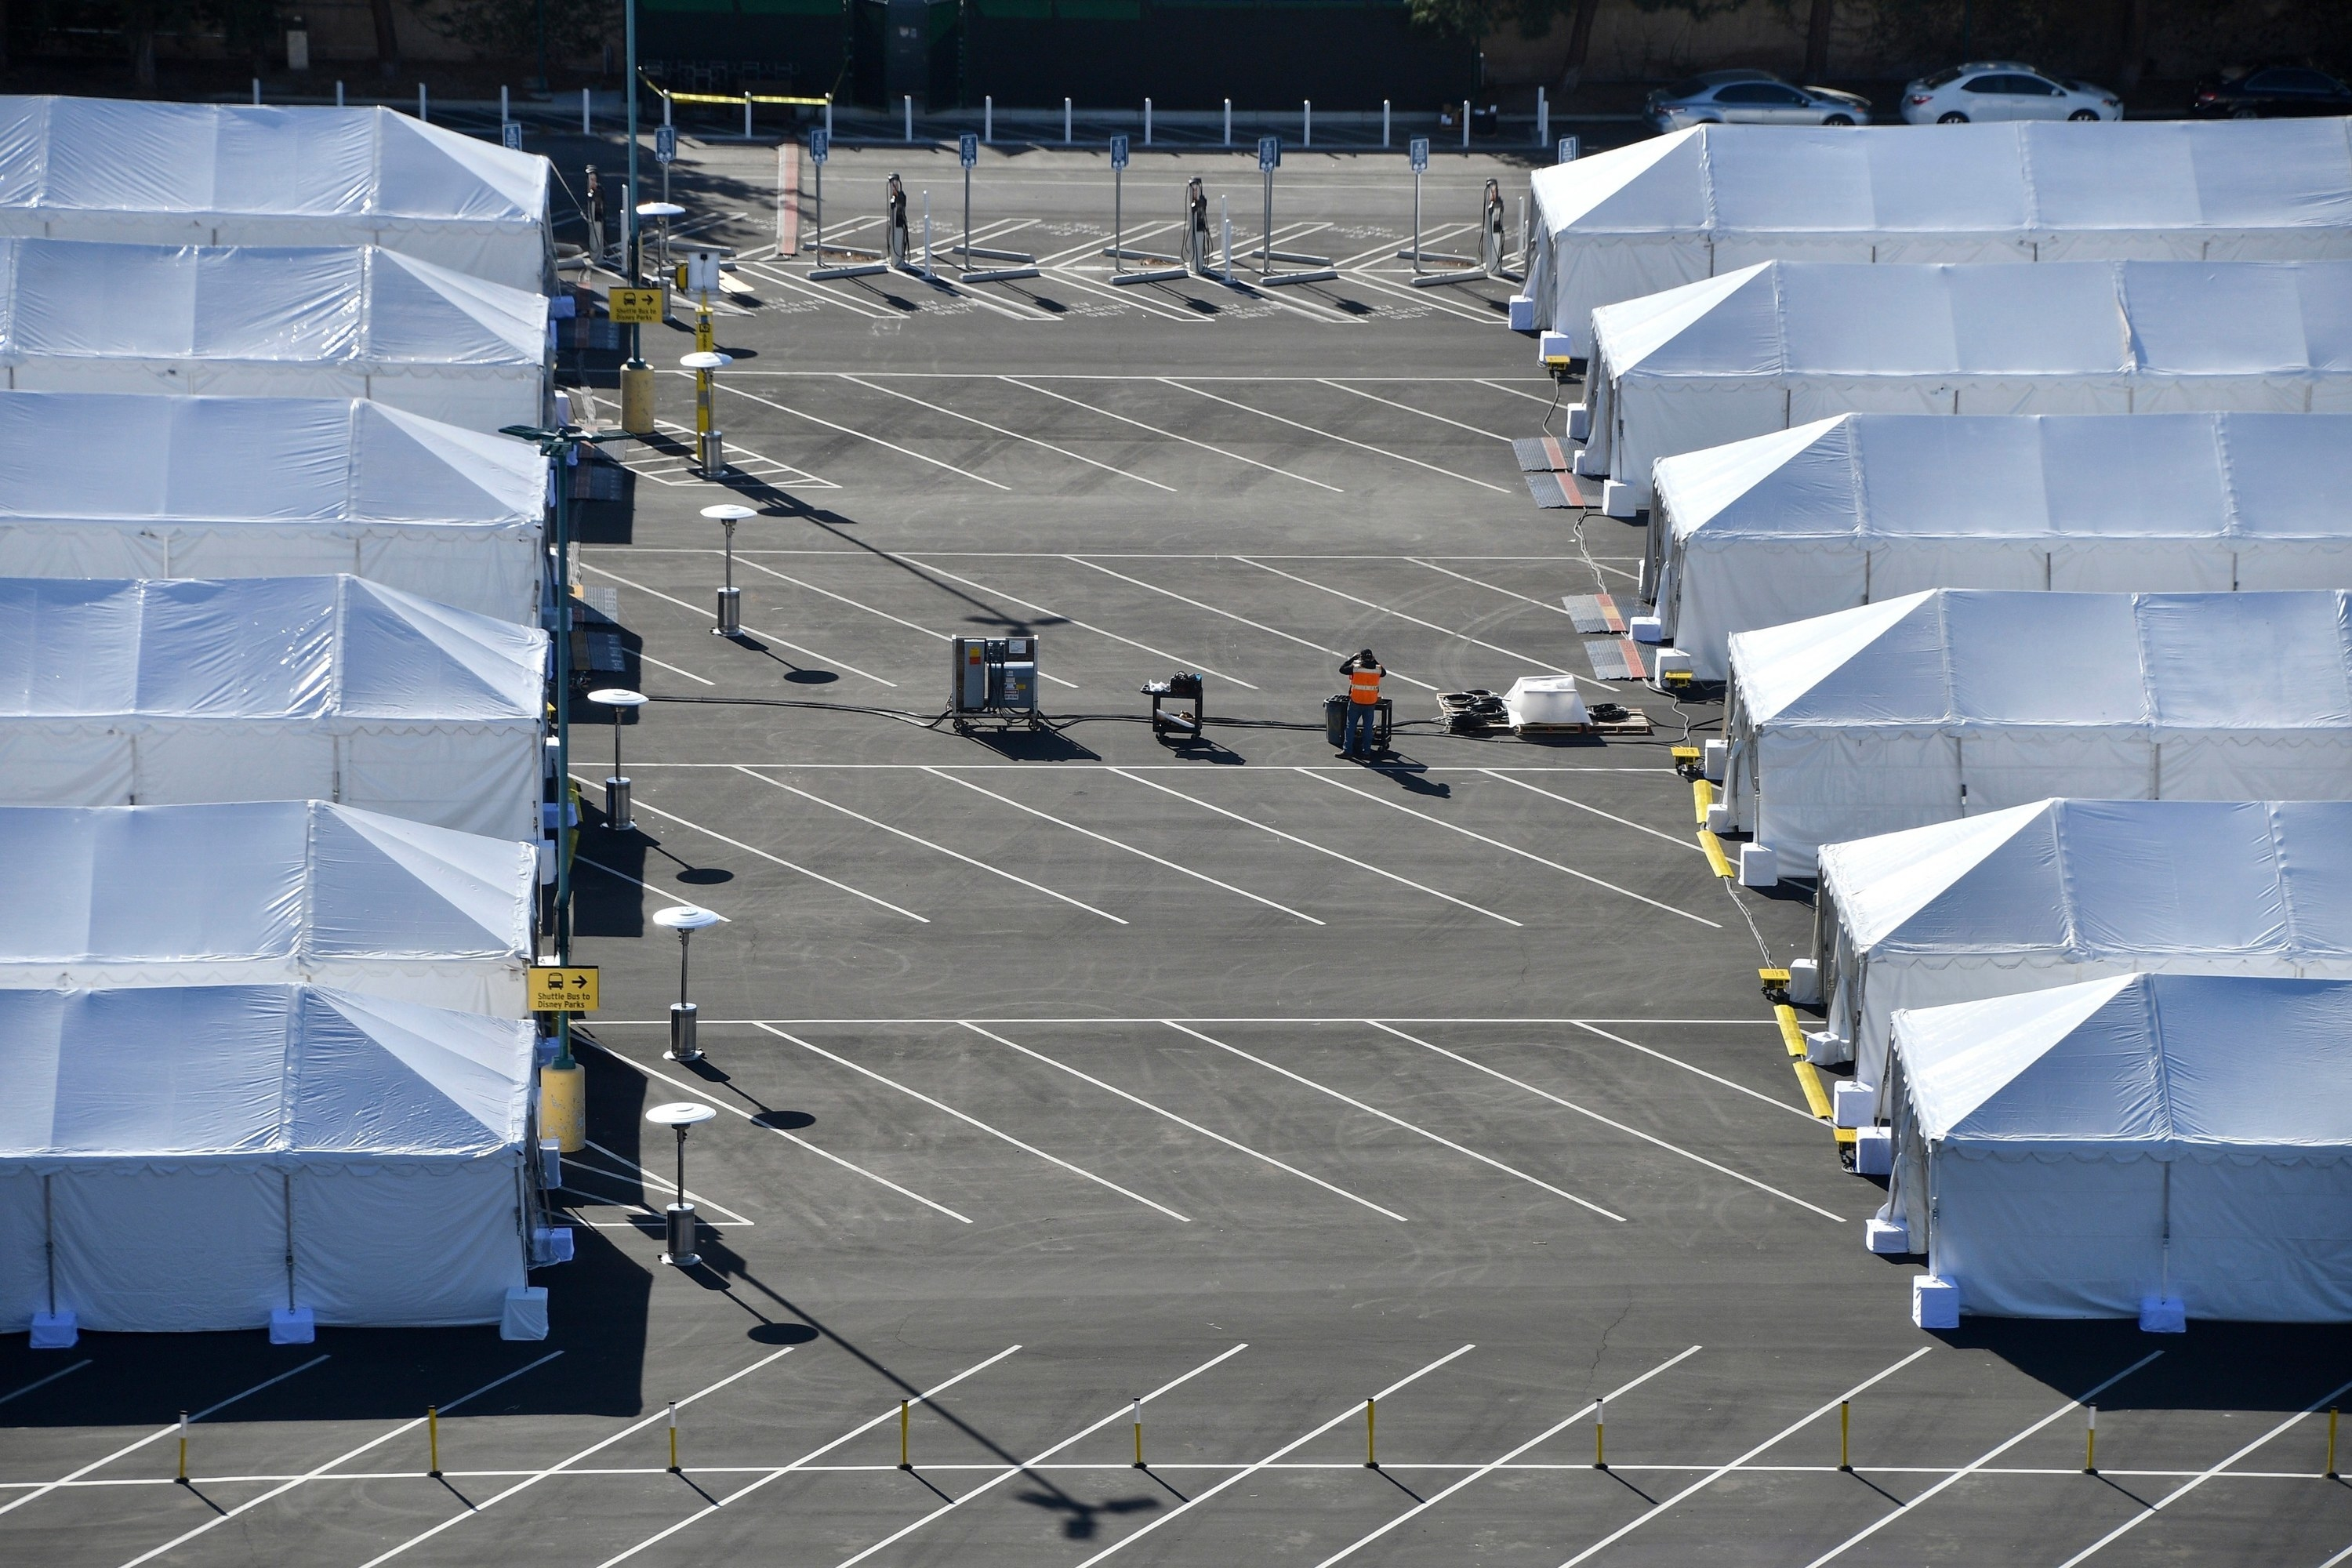 Tents set up in a parking lot